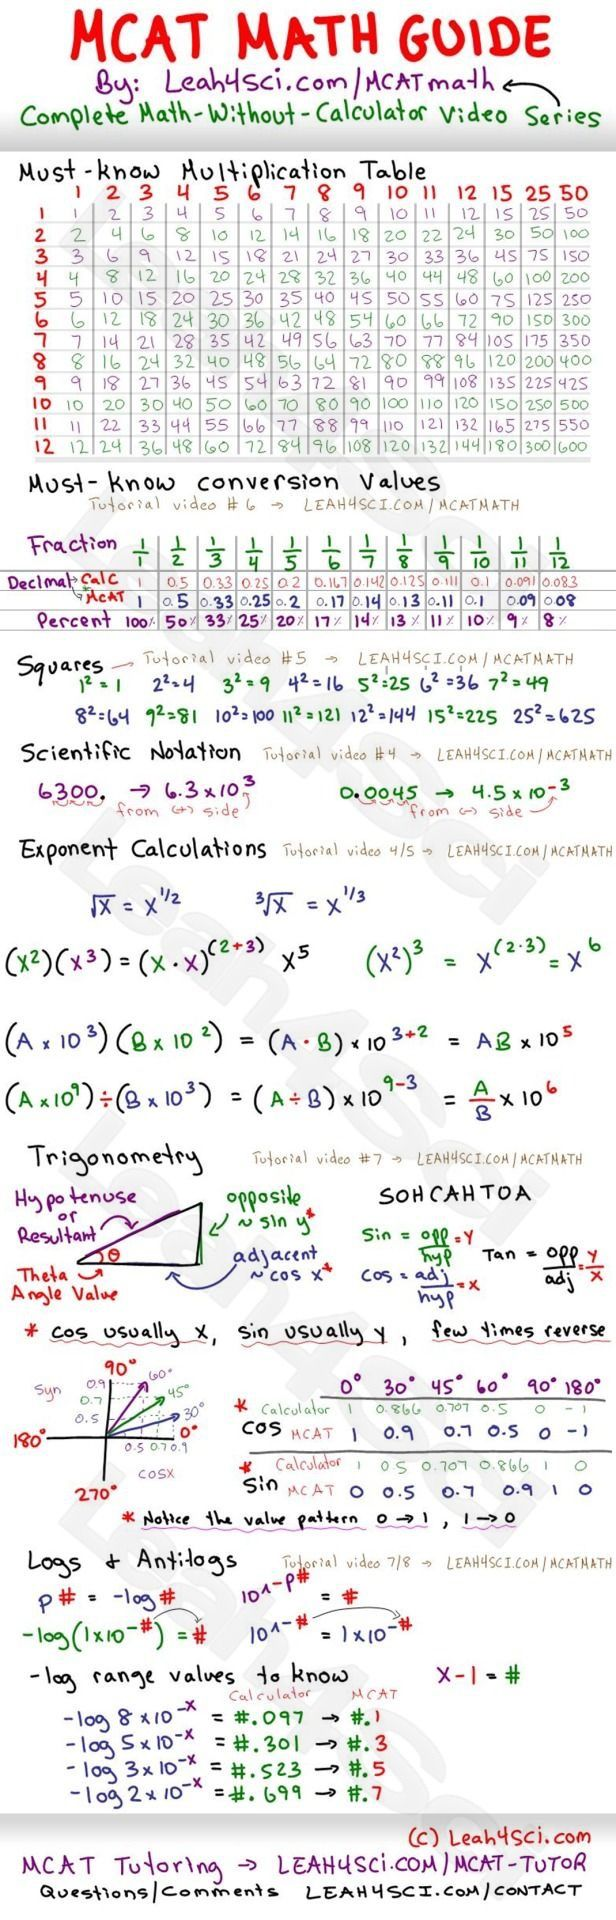 Math 105 Guide Sheet Engine Wiring Harness Generator 105a Compact Laminated Contacts Spring Array Pin By Duane Hall On Pinterest School And Physics Rh Com